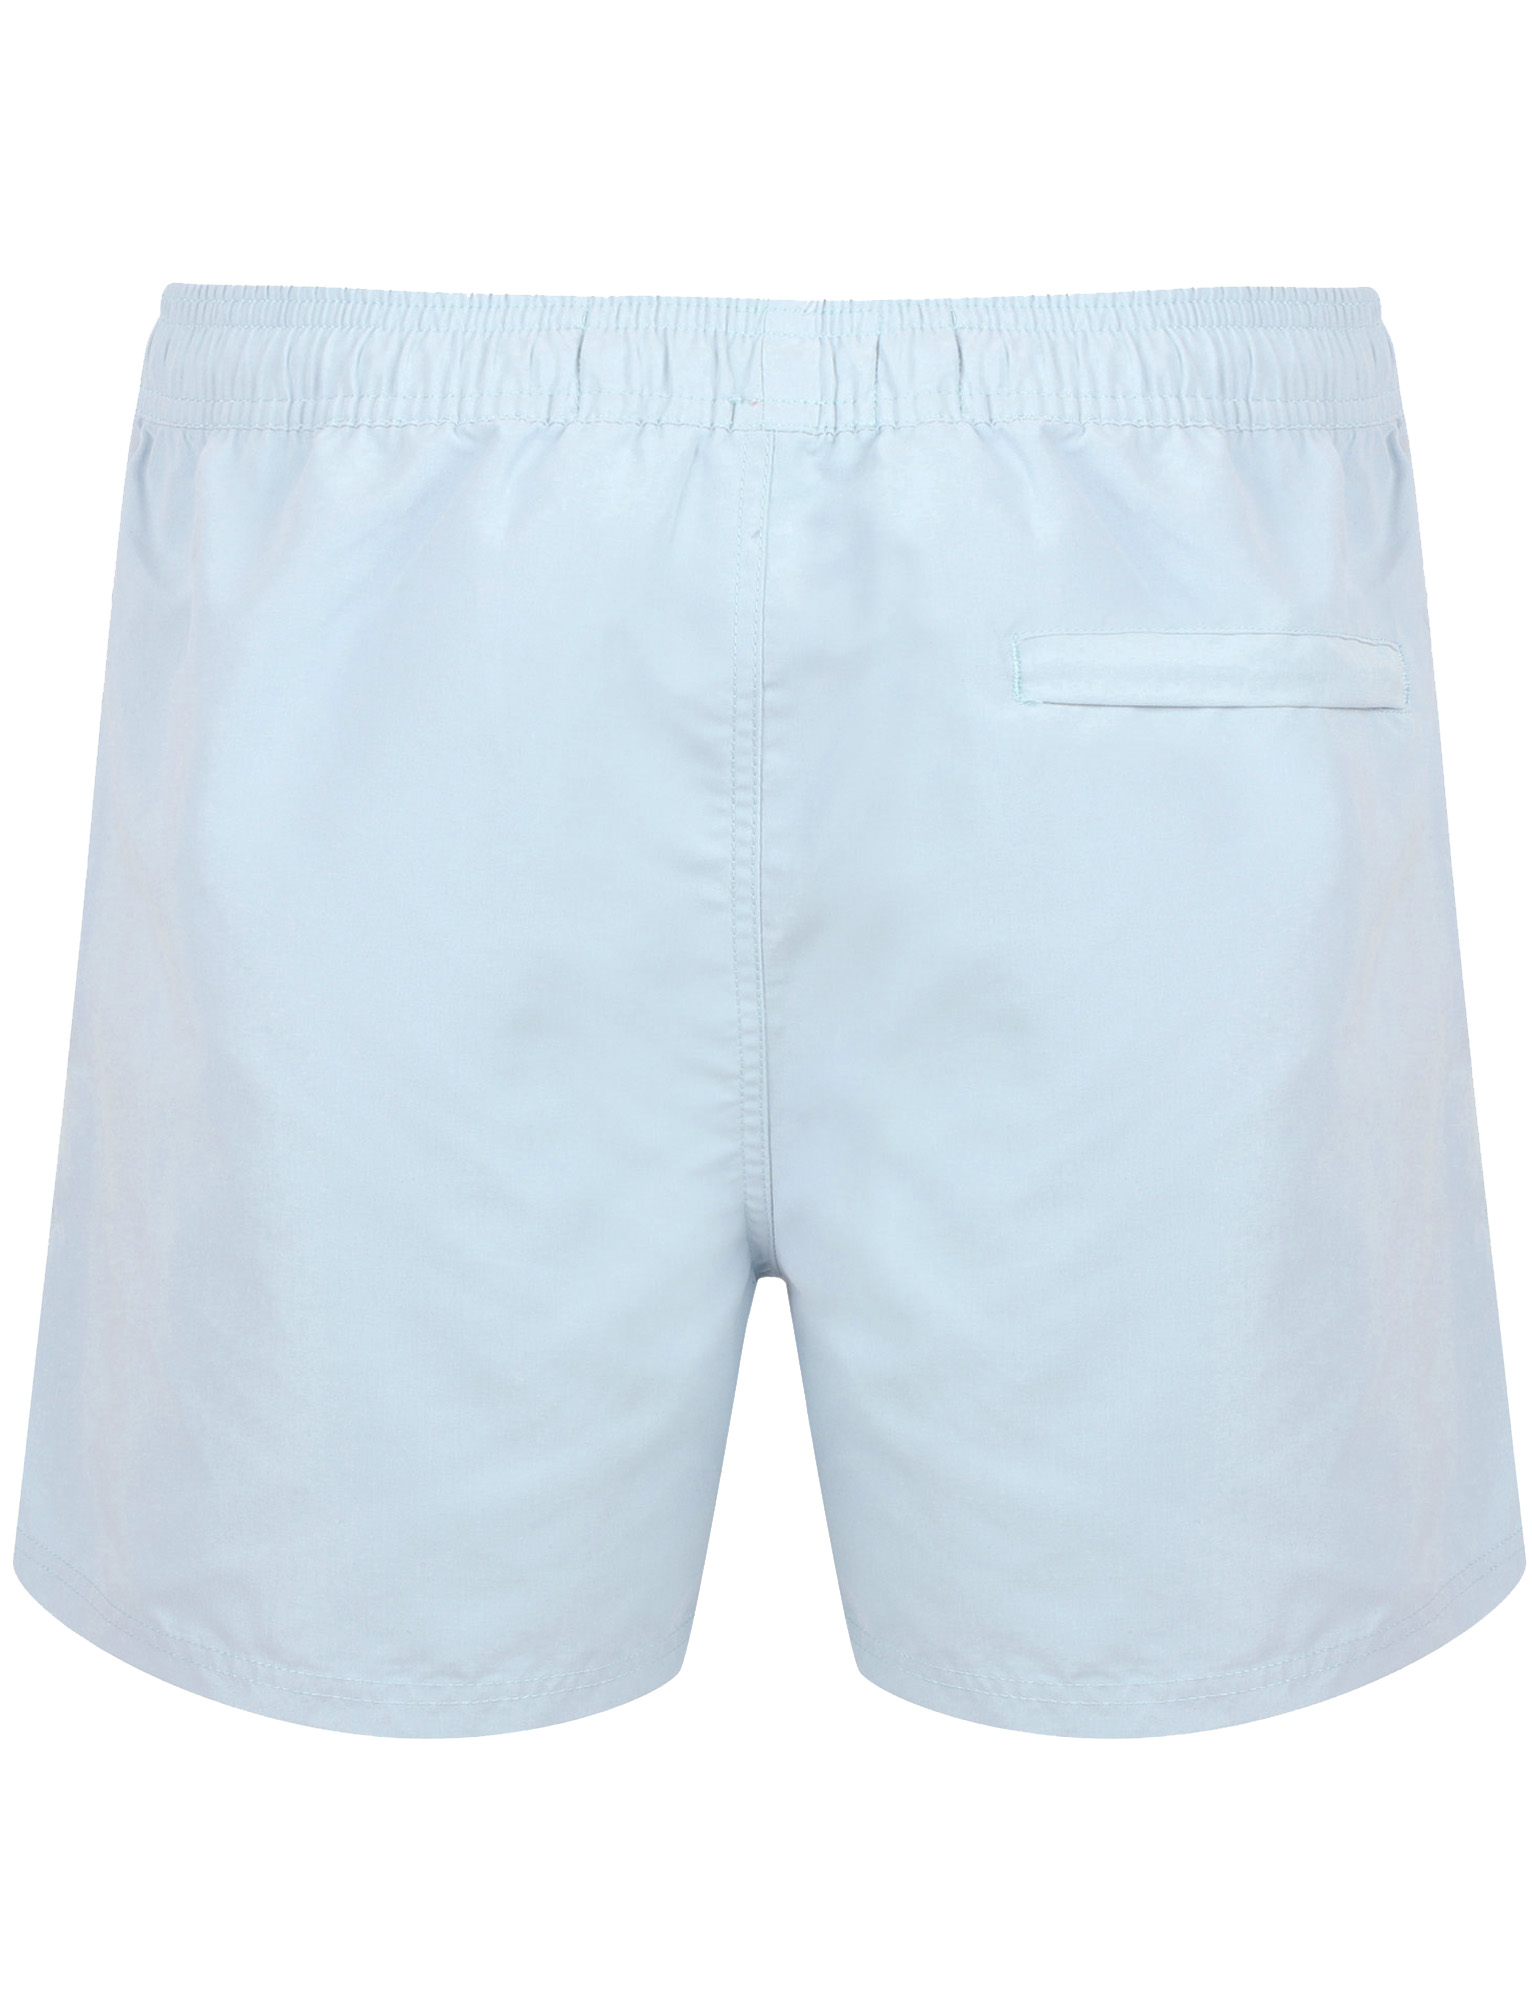 New-Mens-Tokyo-Laundry-Branded-Classic-Soft-Swim-Shorts-With-Pockets-Size-S-XXL thumbnail 9